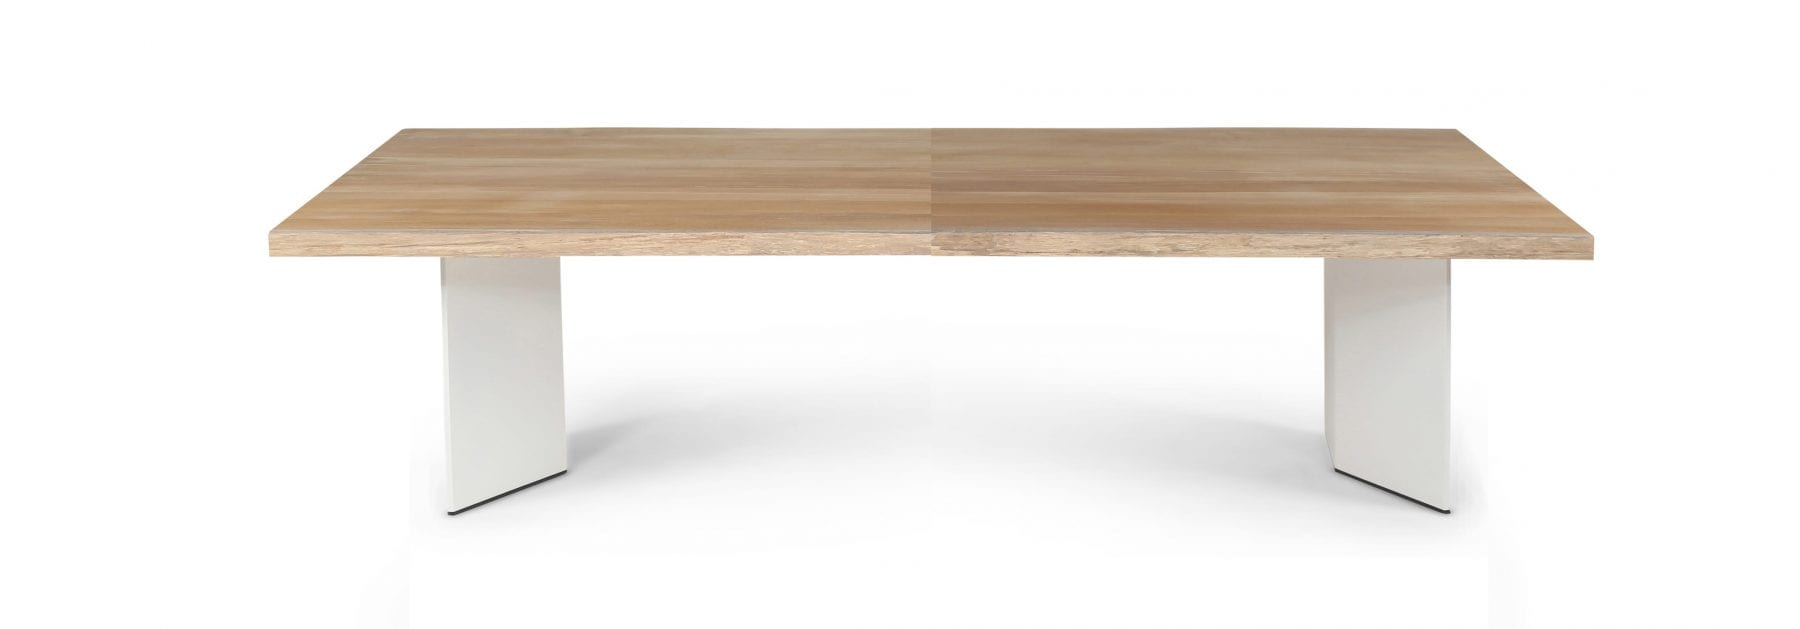 Harbour-1976-Pure-Indoor_coffee table